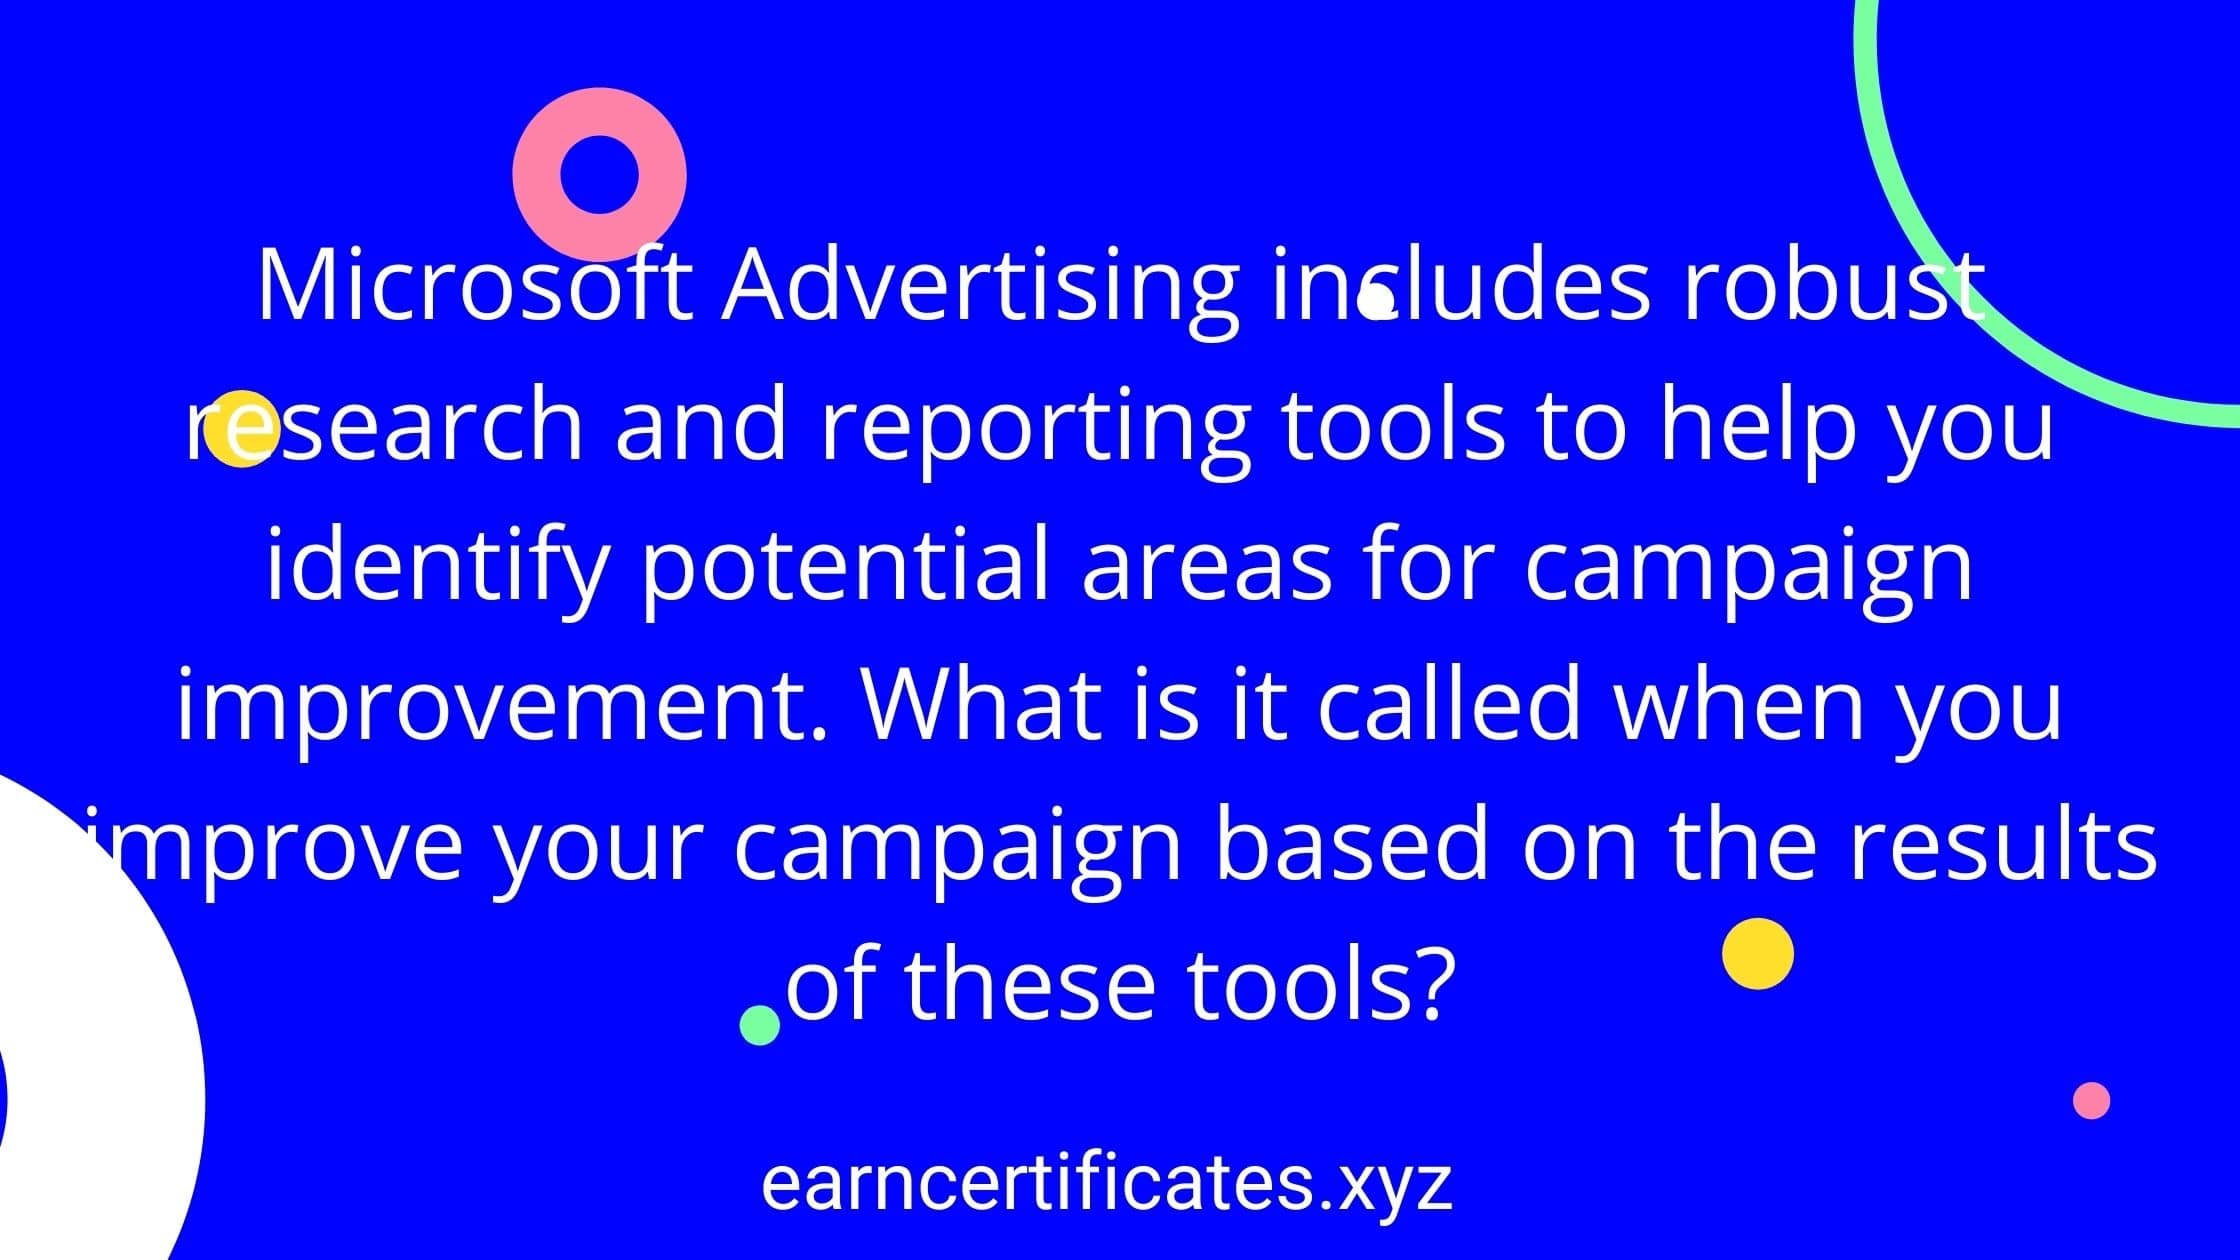 Microsoft Advertising includes robust research and reporting tools to help you identify potential areas for campaign improvement. What is it called when you improve your campaign based on the results of these tools?